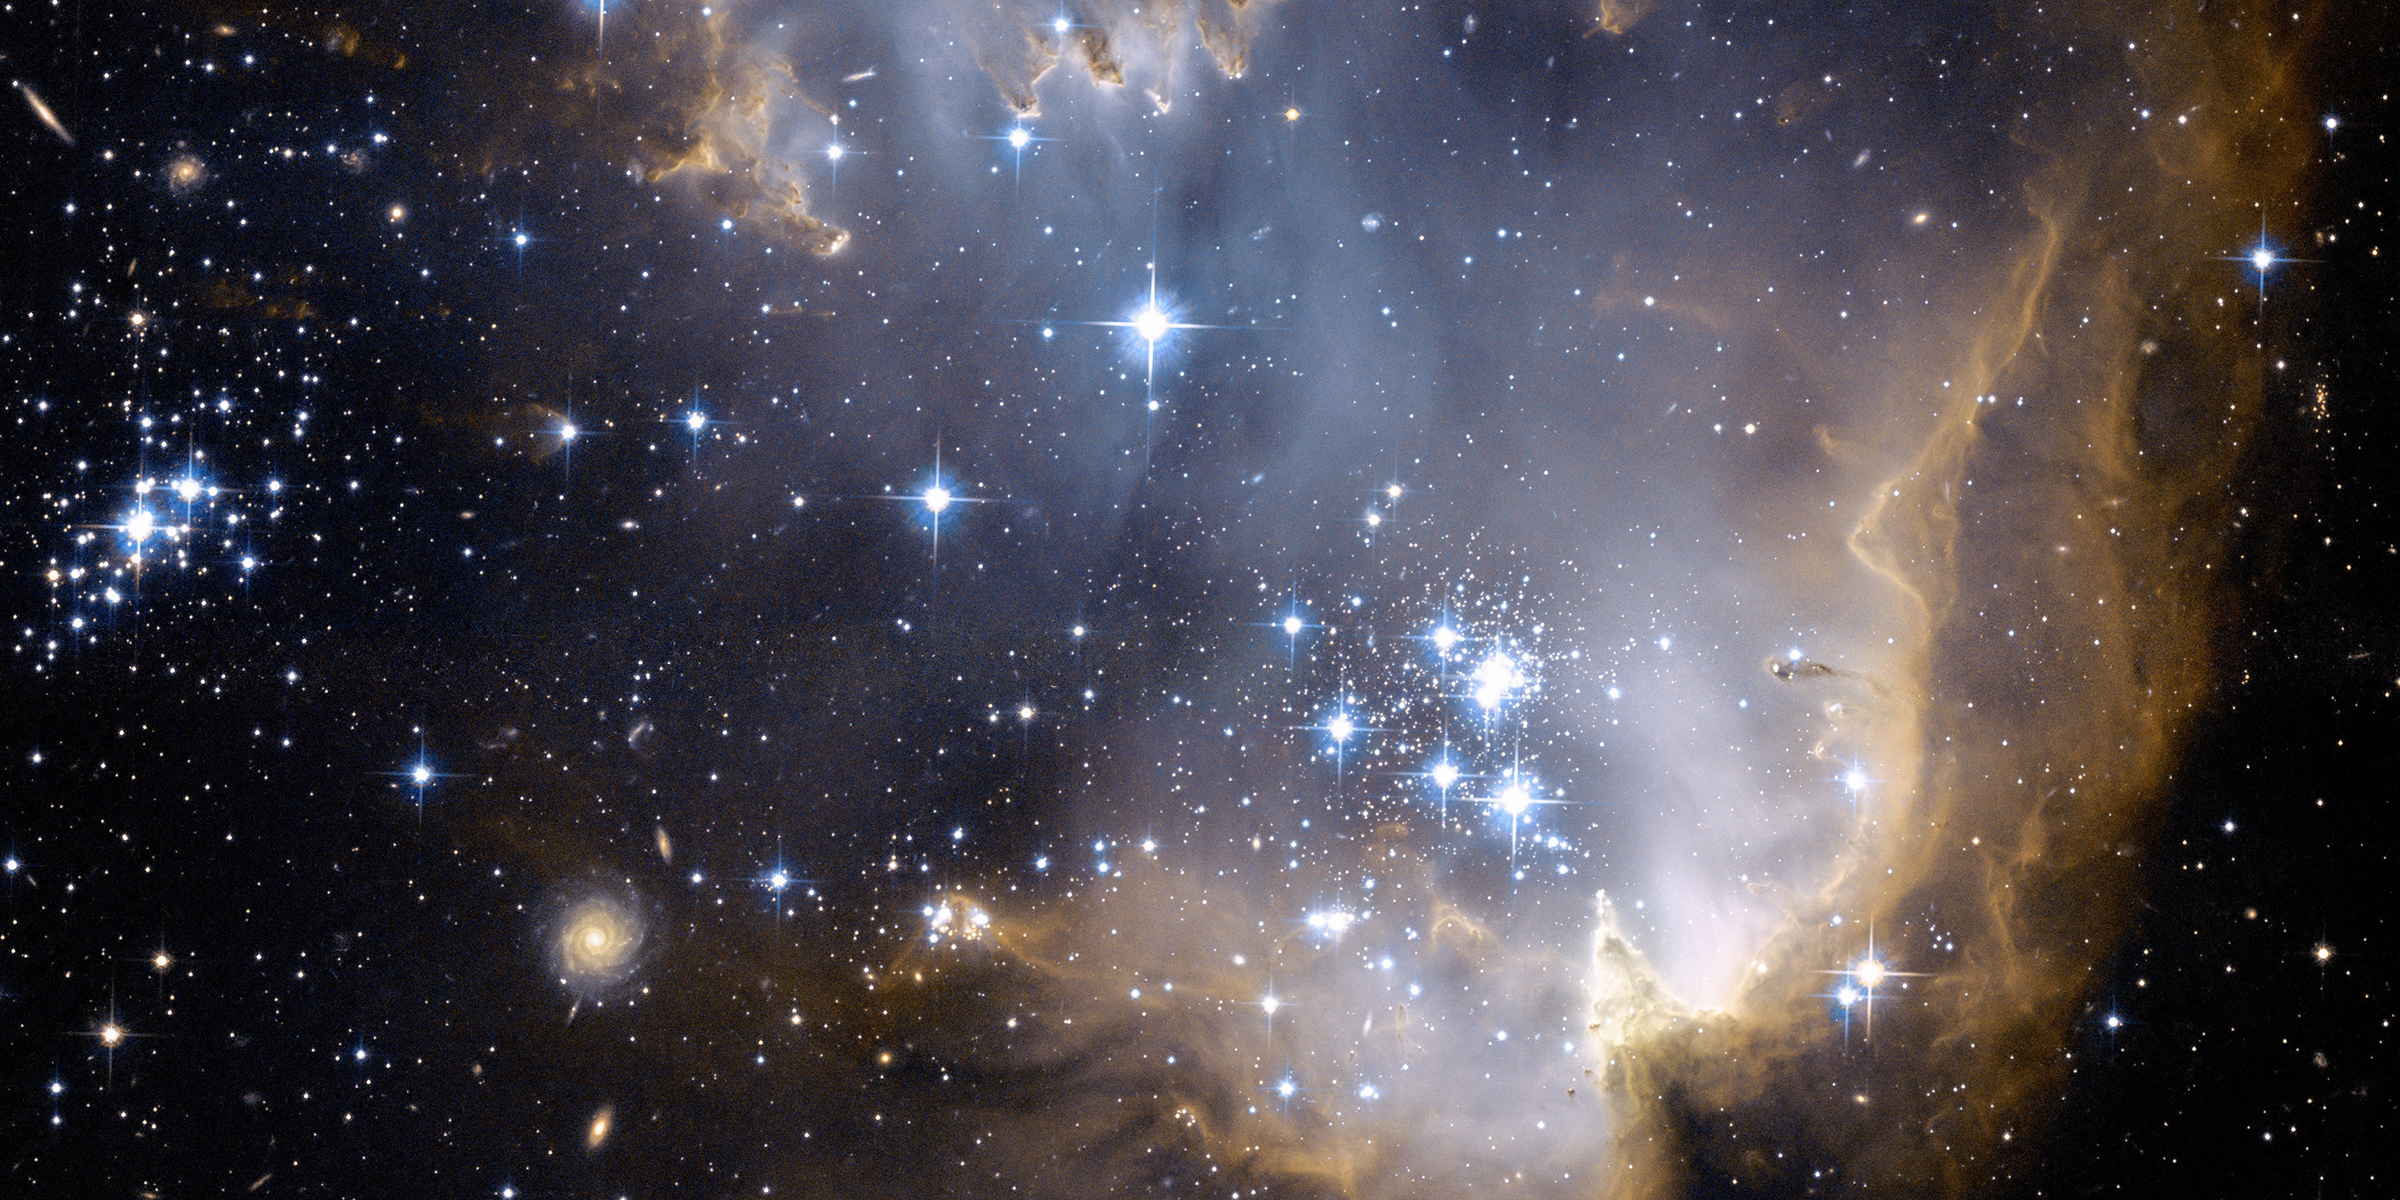 NGC 602. Credit: NASA, ESA and the Hubble Heritage Team (STScI, AURA).